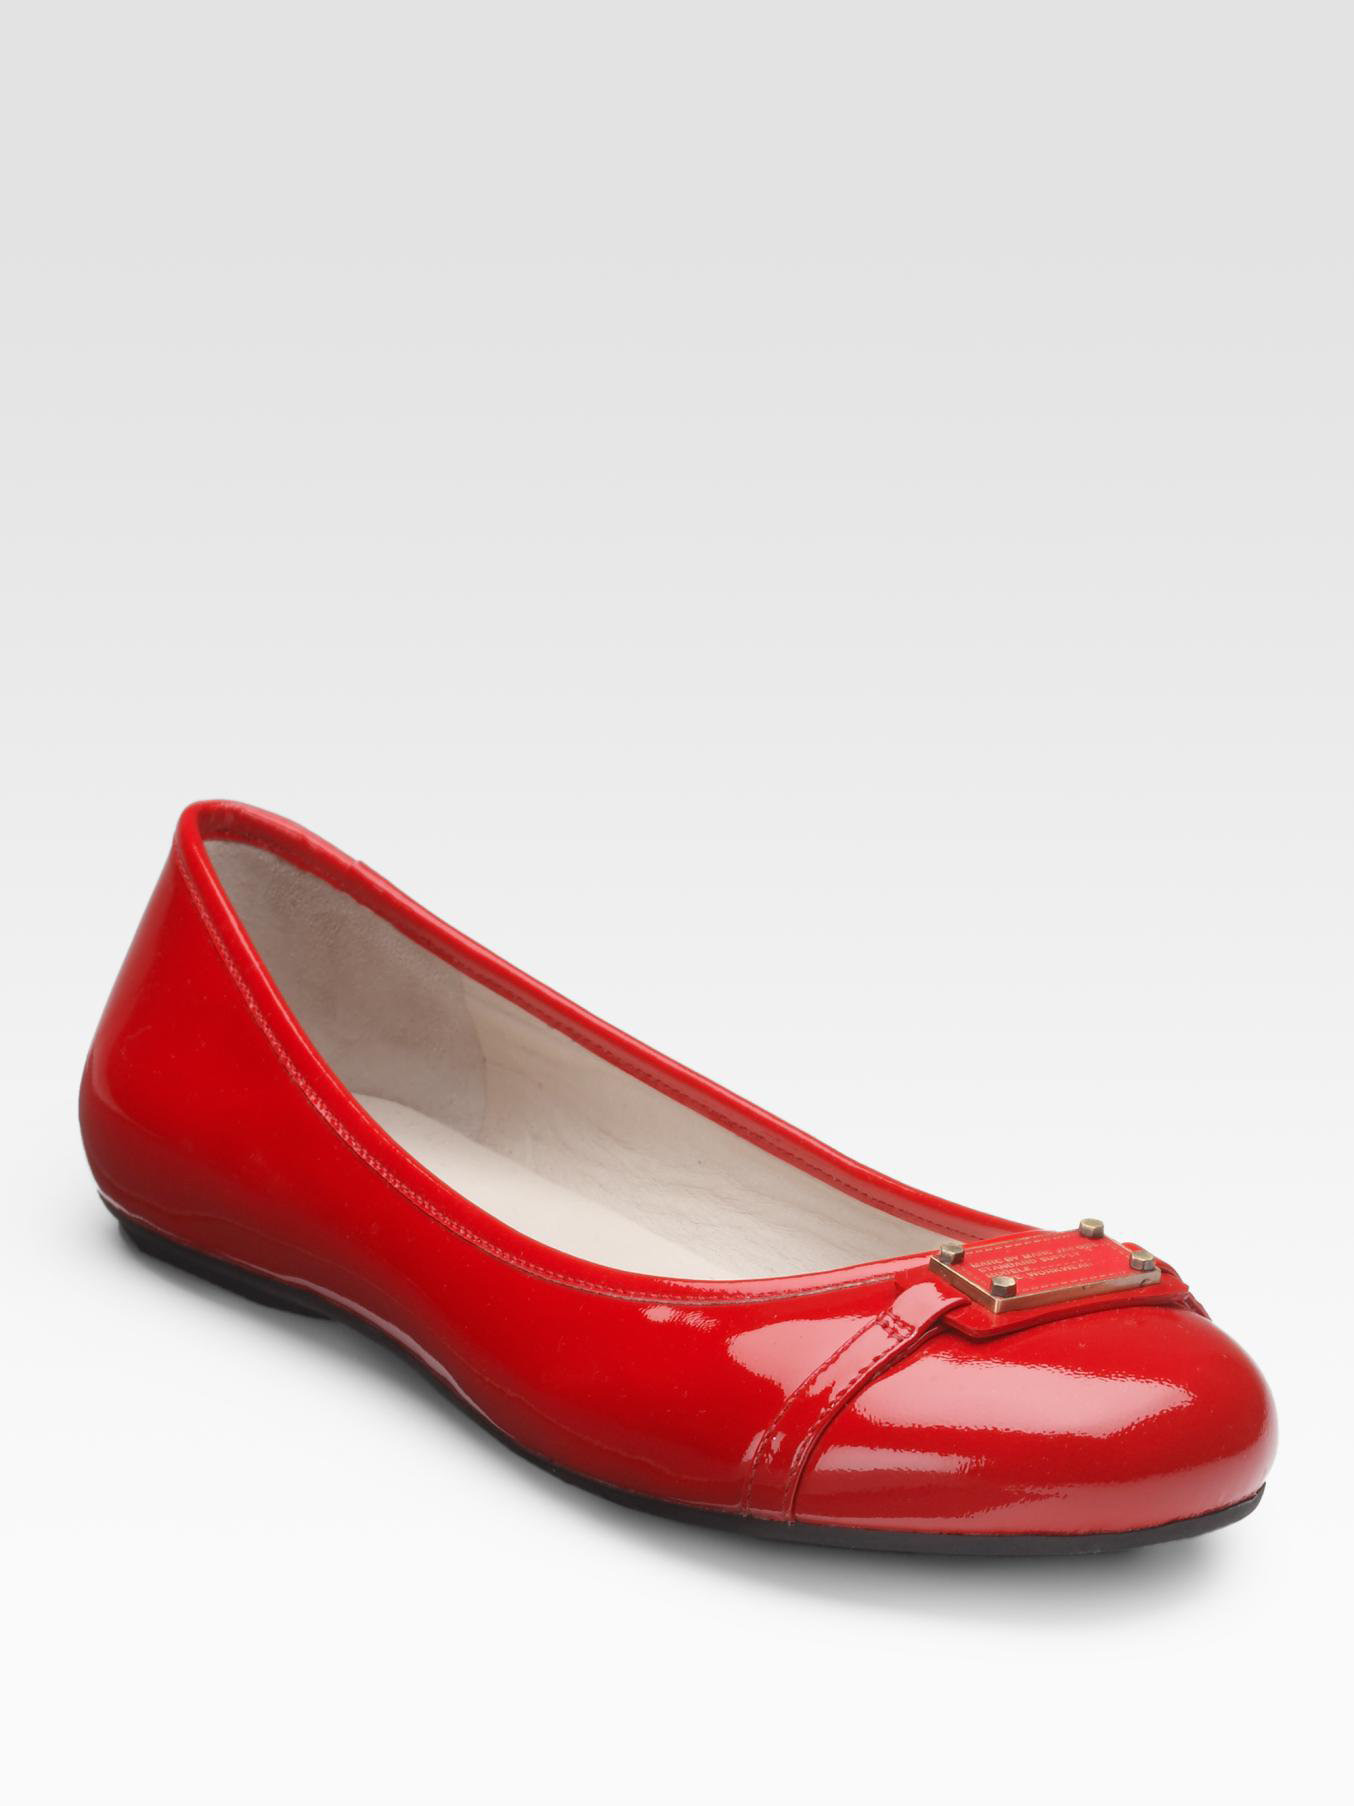 Anne Klein Red Patent Leather Shoes